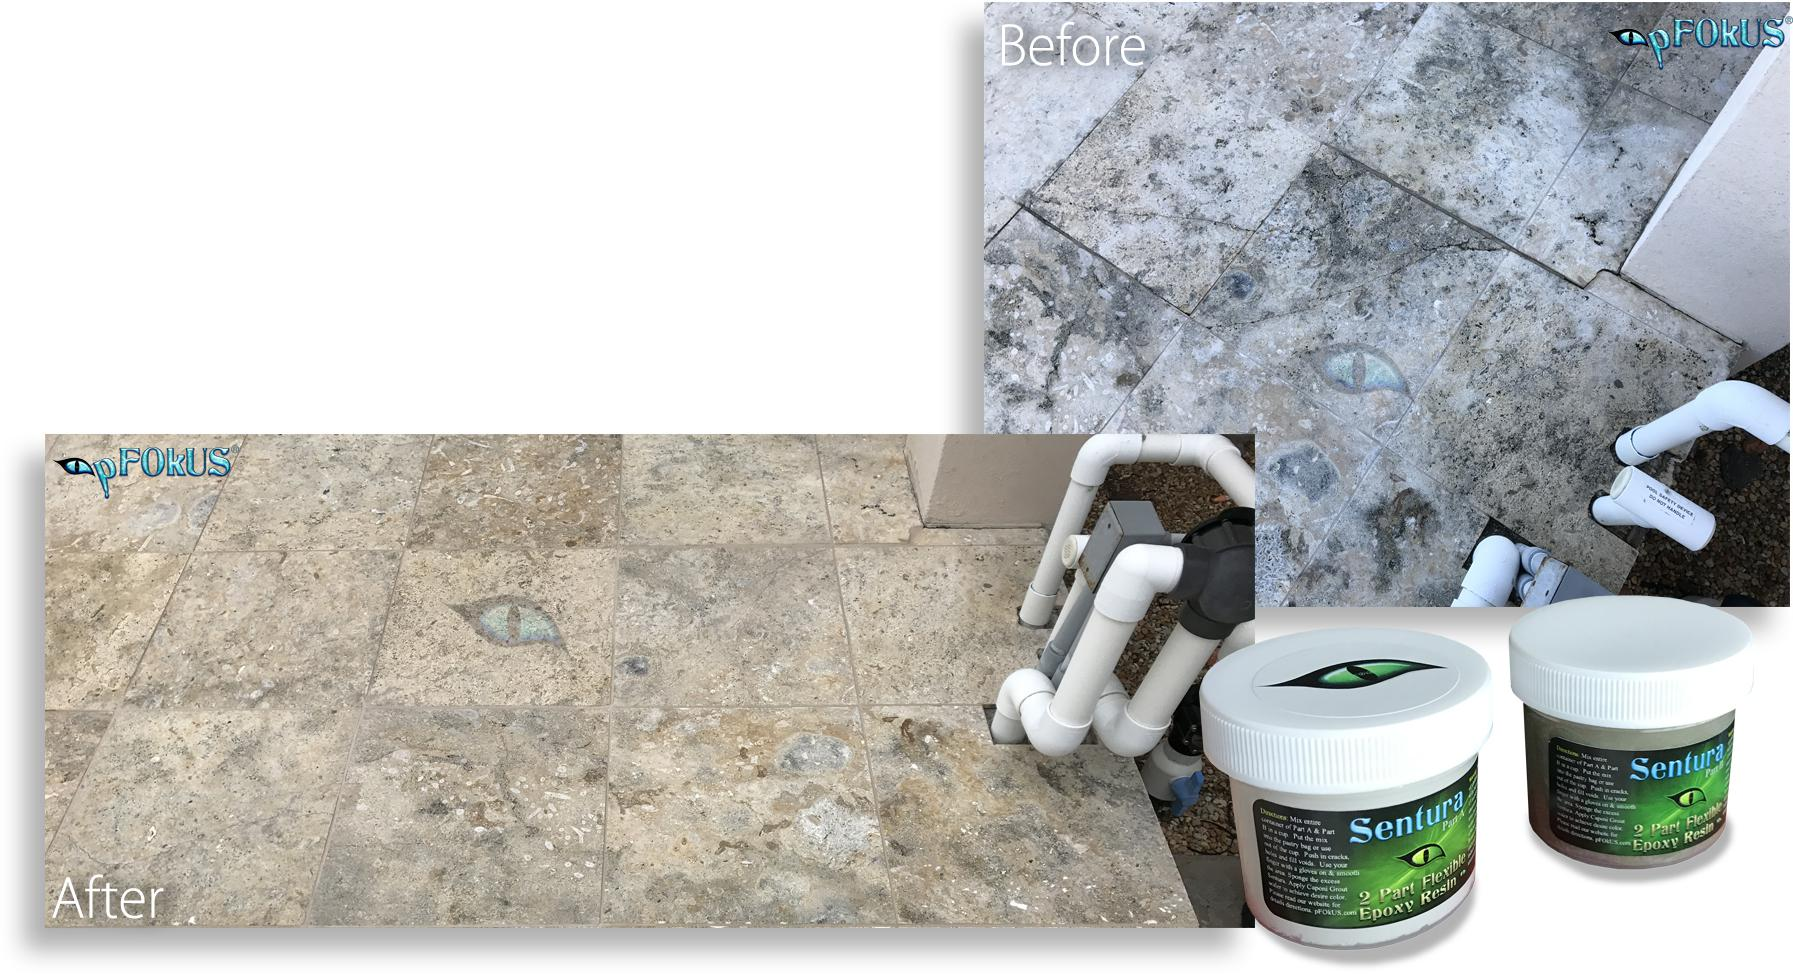 Cracked Grout and Travertine Stone Repair with a Powerful Adhesive